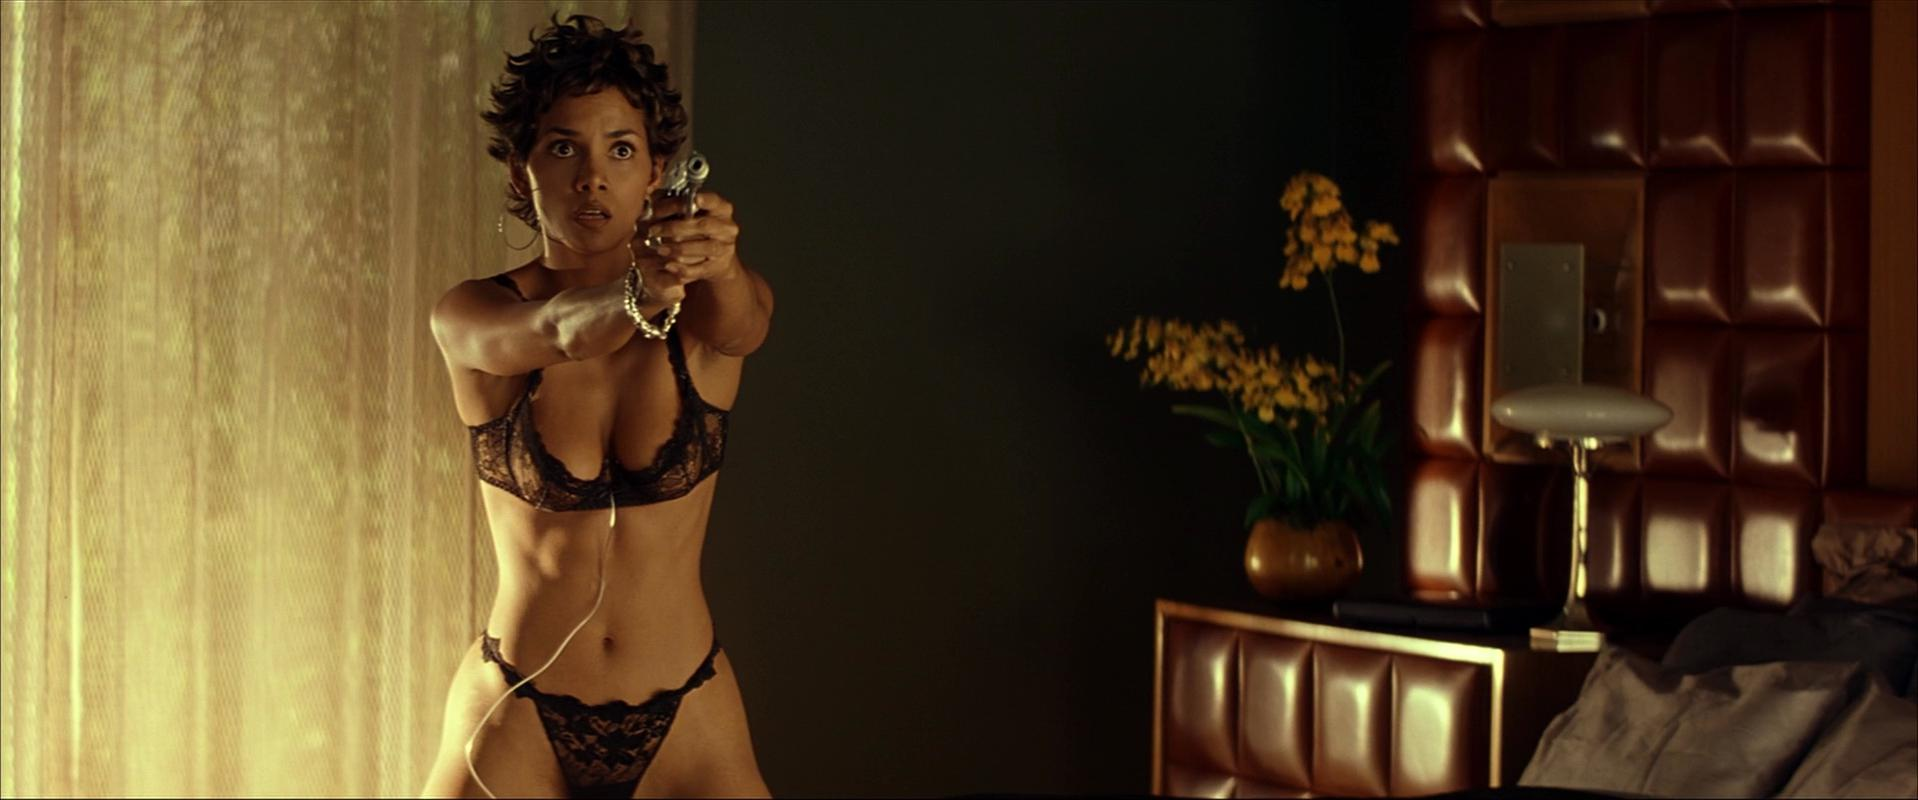 Halle berry naked in movie